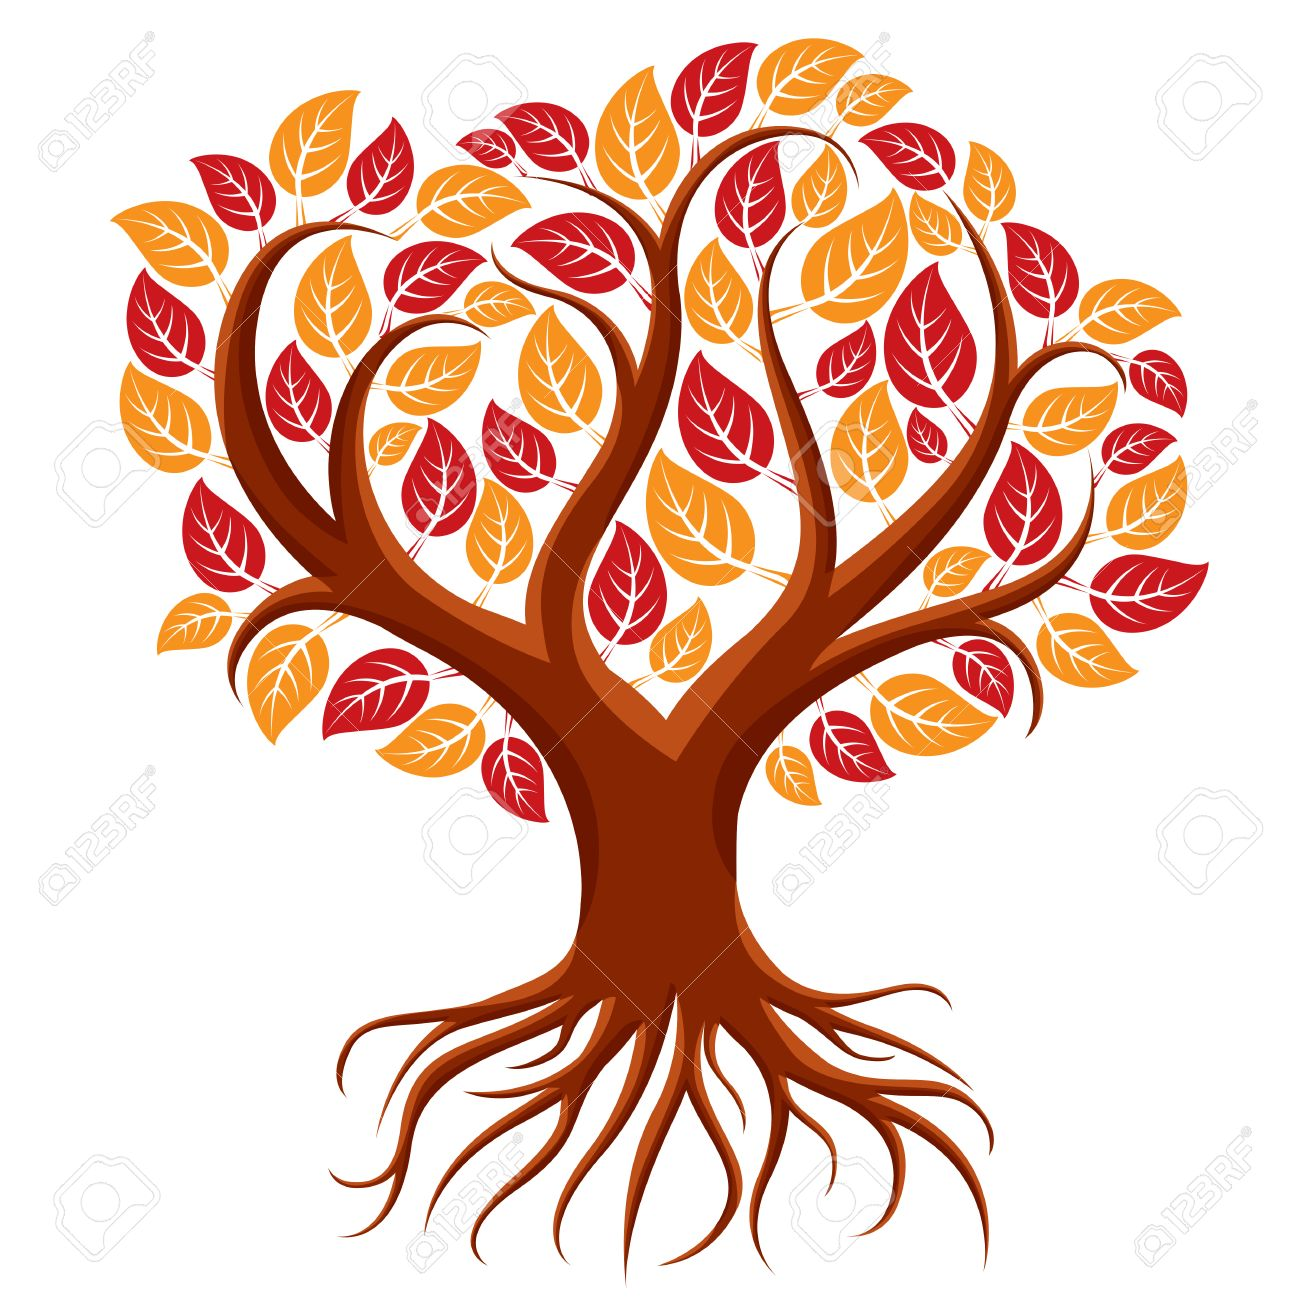 1300x1300 Vector Art Illustration Of Branchy Tree With Strong Roots. Tree